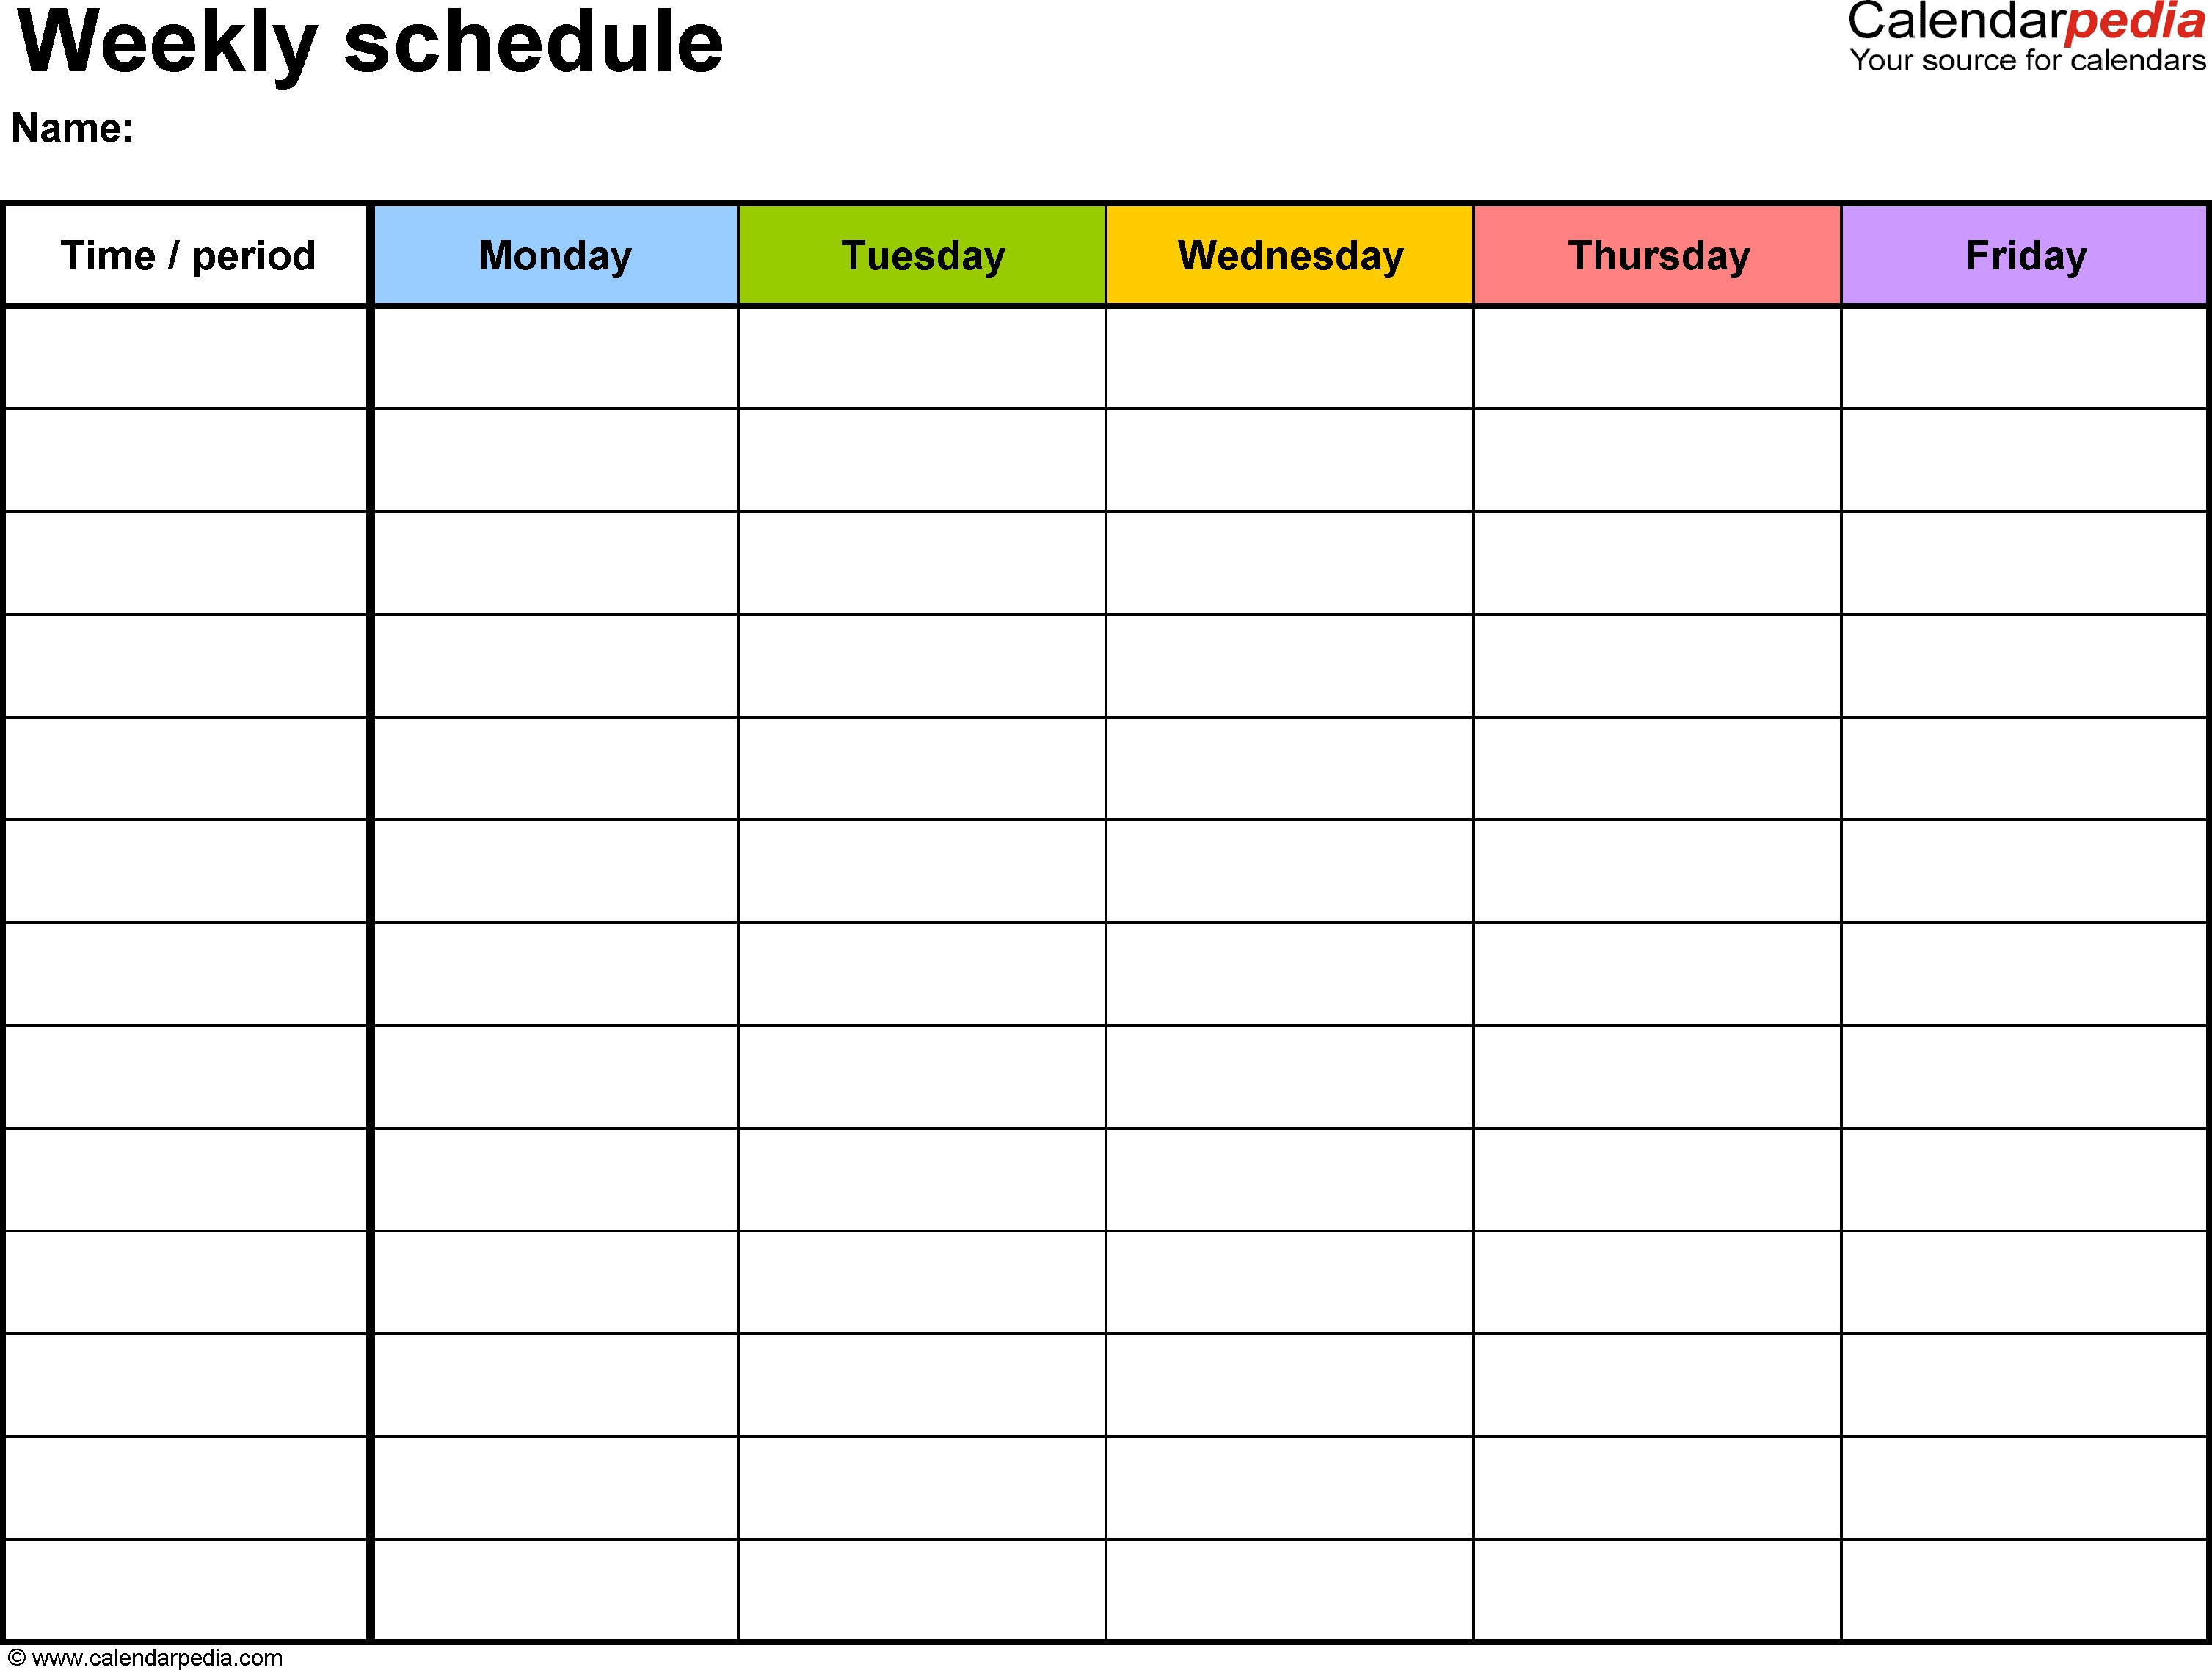 Free Weekly Schedule Templates For Word - 18 Templates intended for Monday Through Friday Monthly Calendar